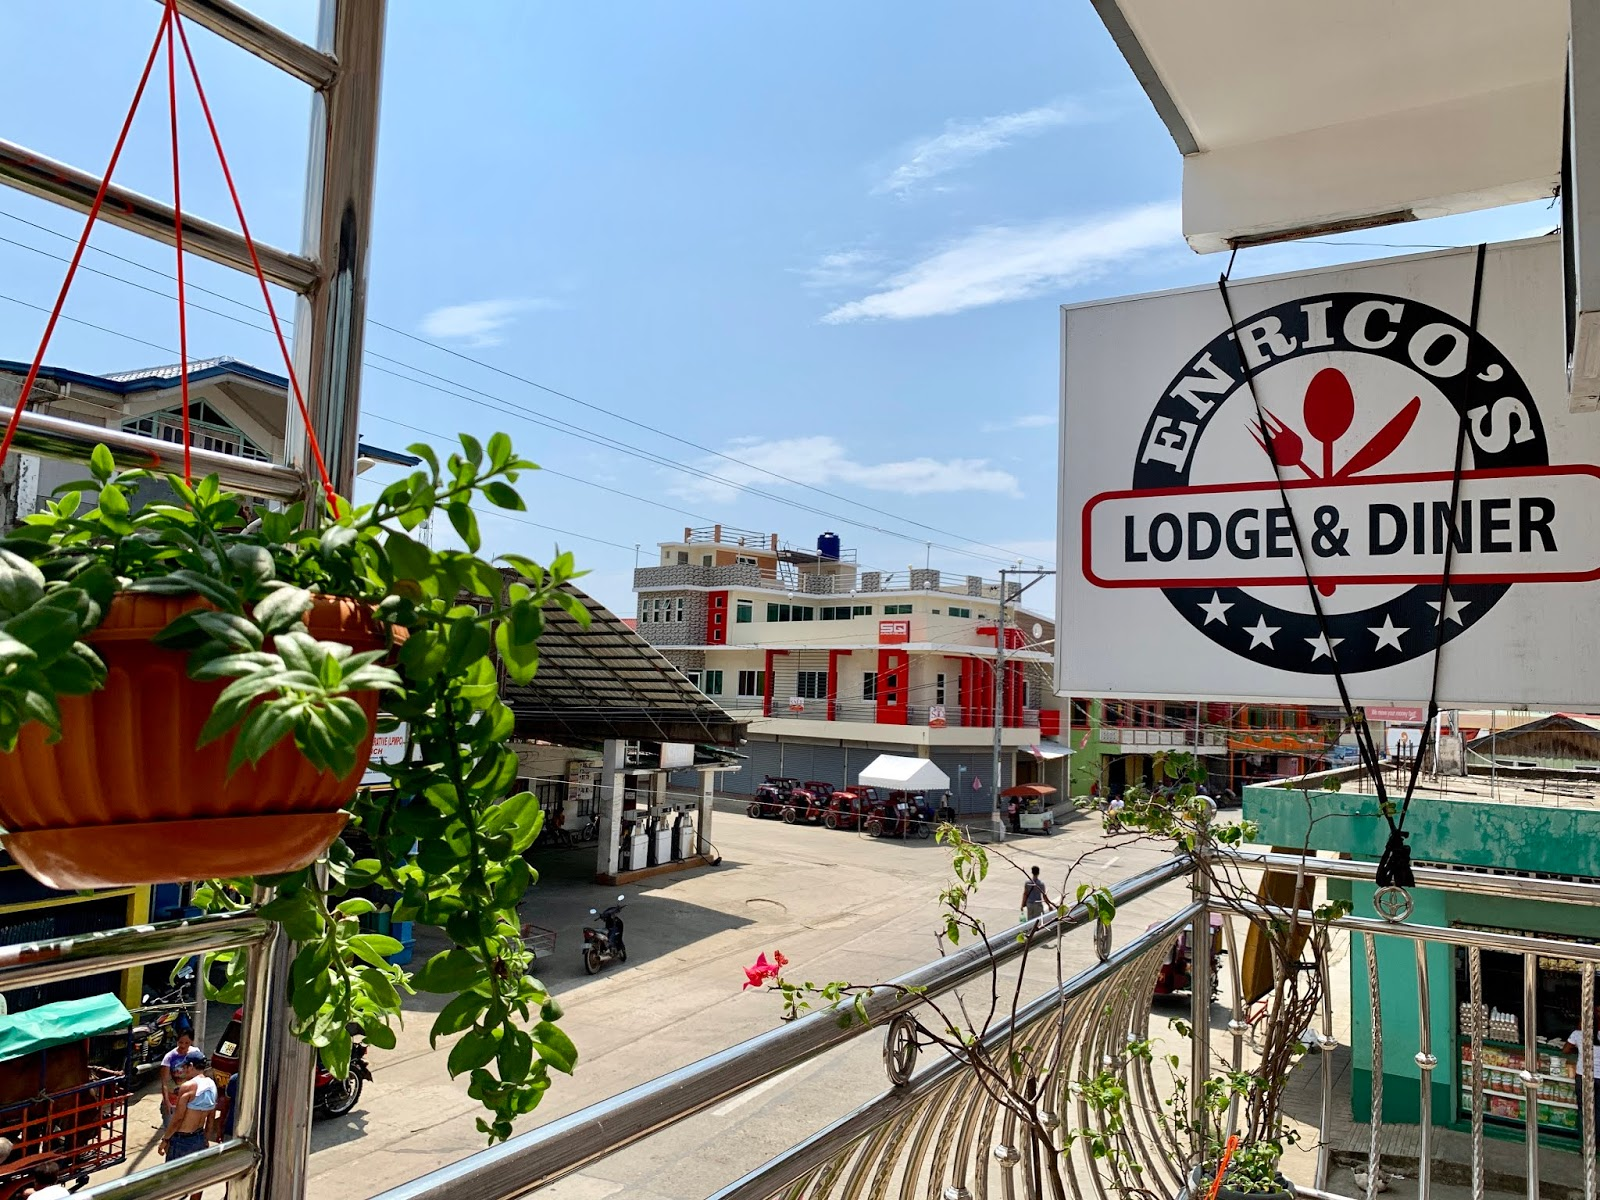 Enrico's Lodge and Diner